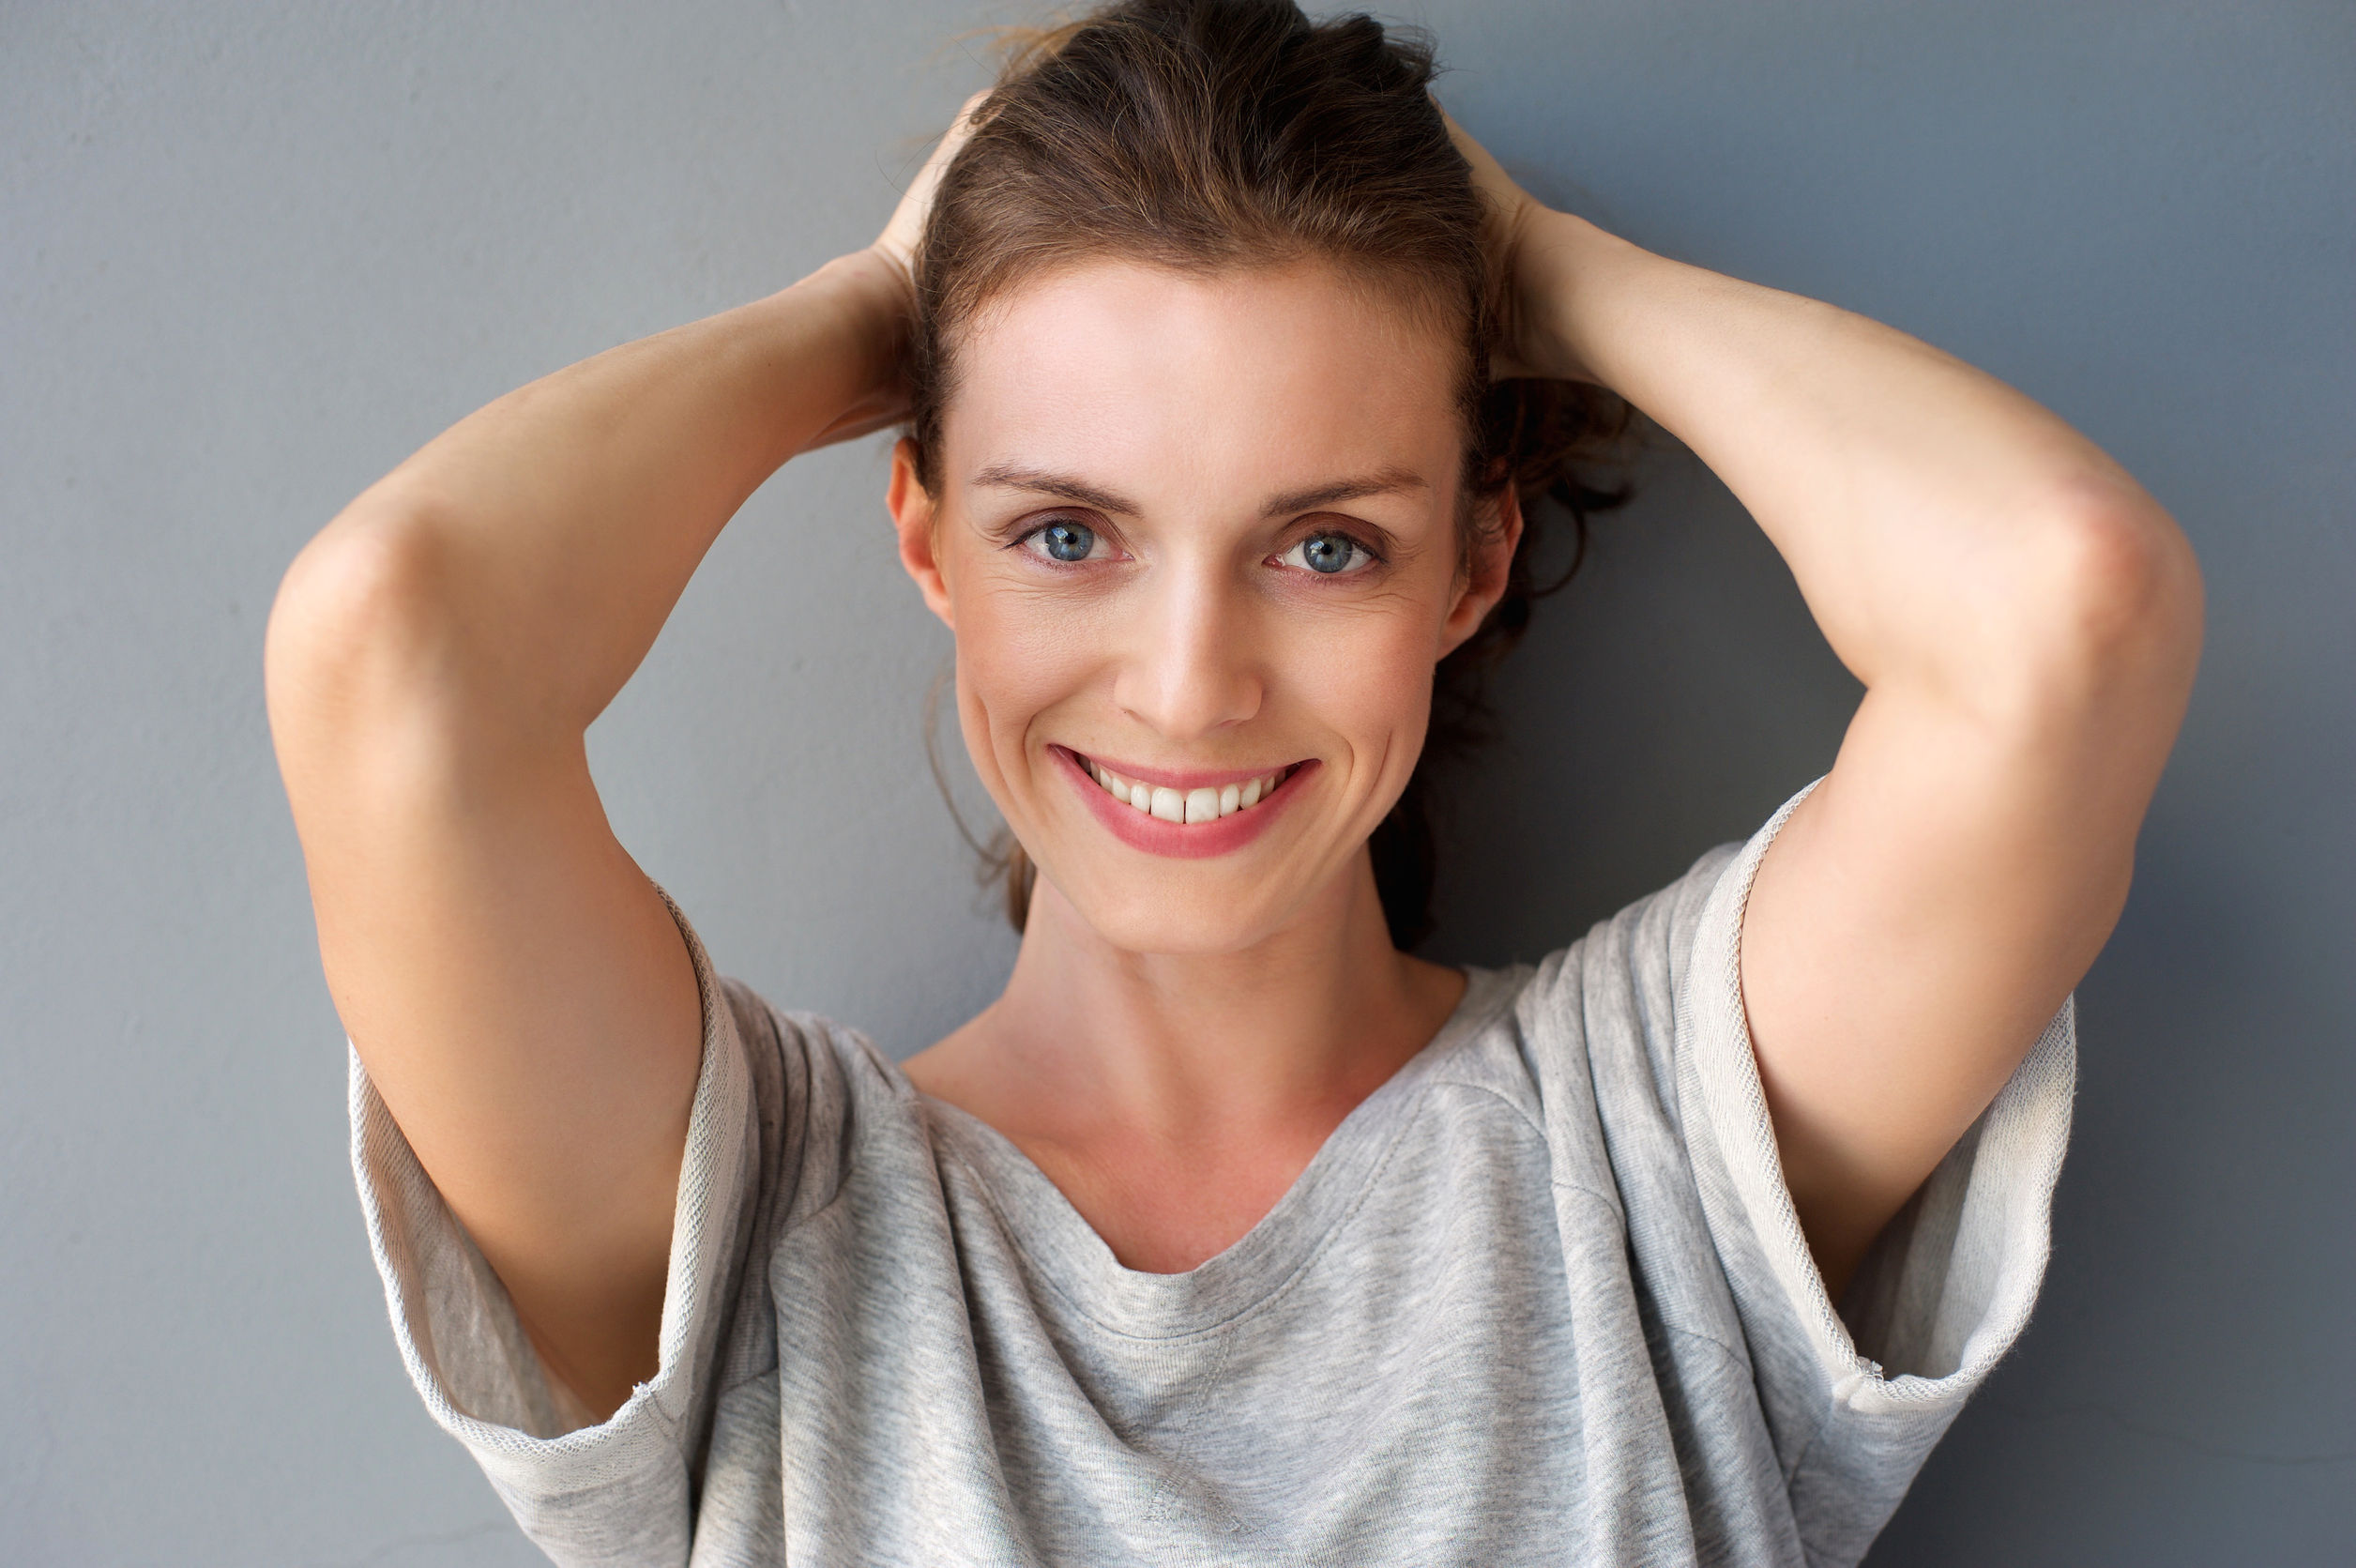 37864615 - close up portrait of a happy mid adult woman smiling with hands in hair against gray background